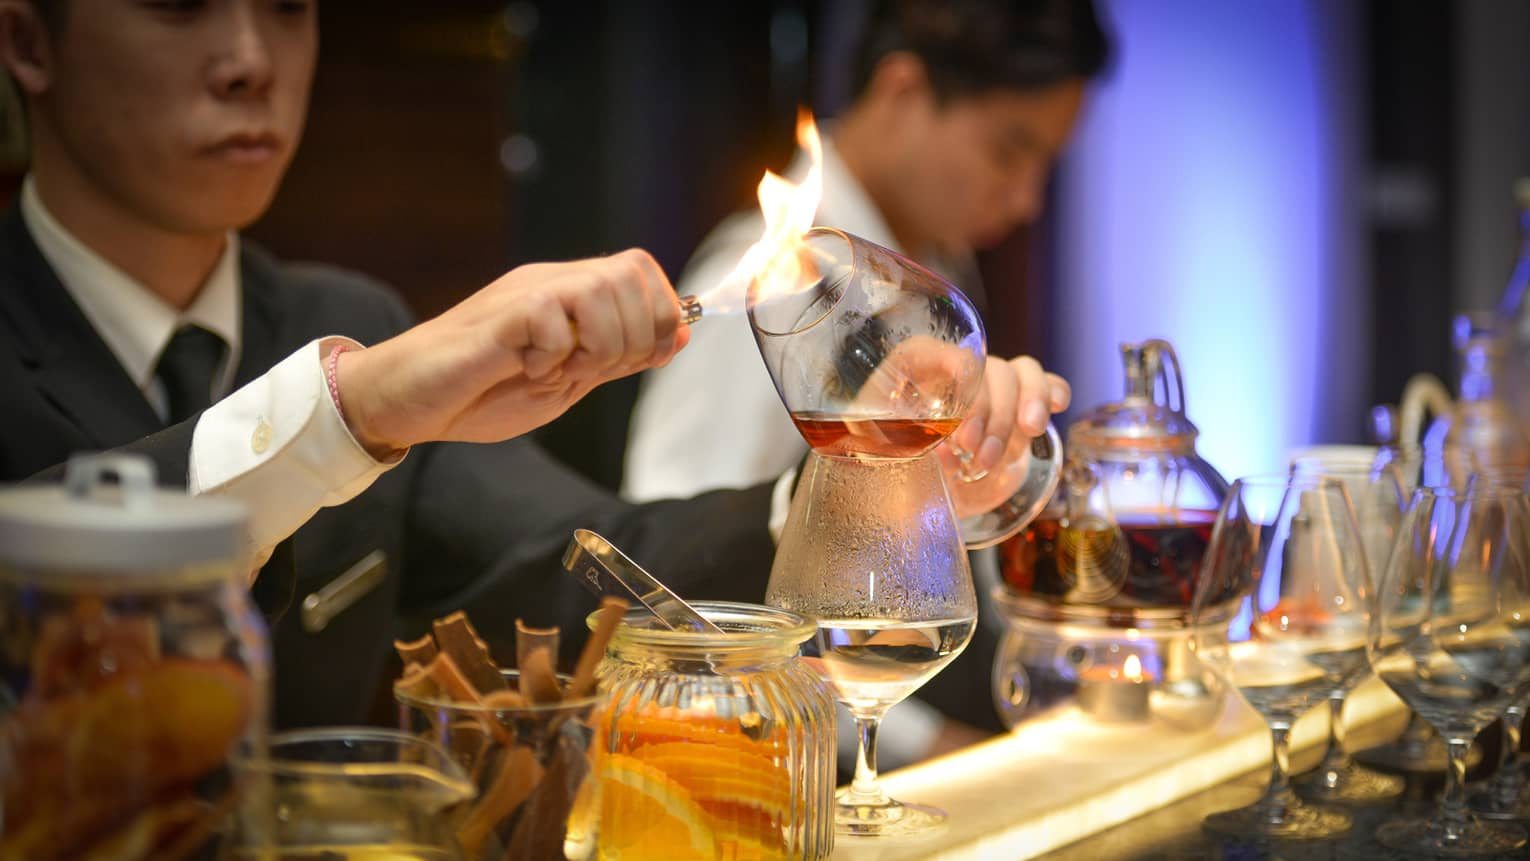 Opus Bar bartender holds flame to glass of liquor, prepares to pour it into cup